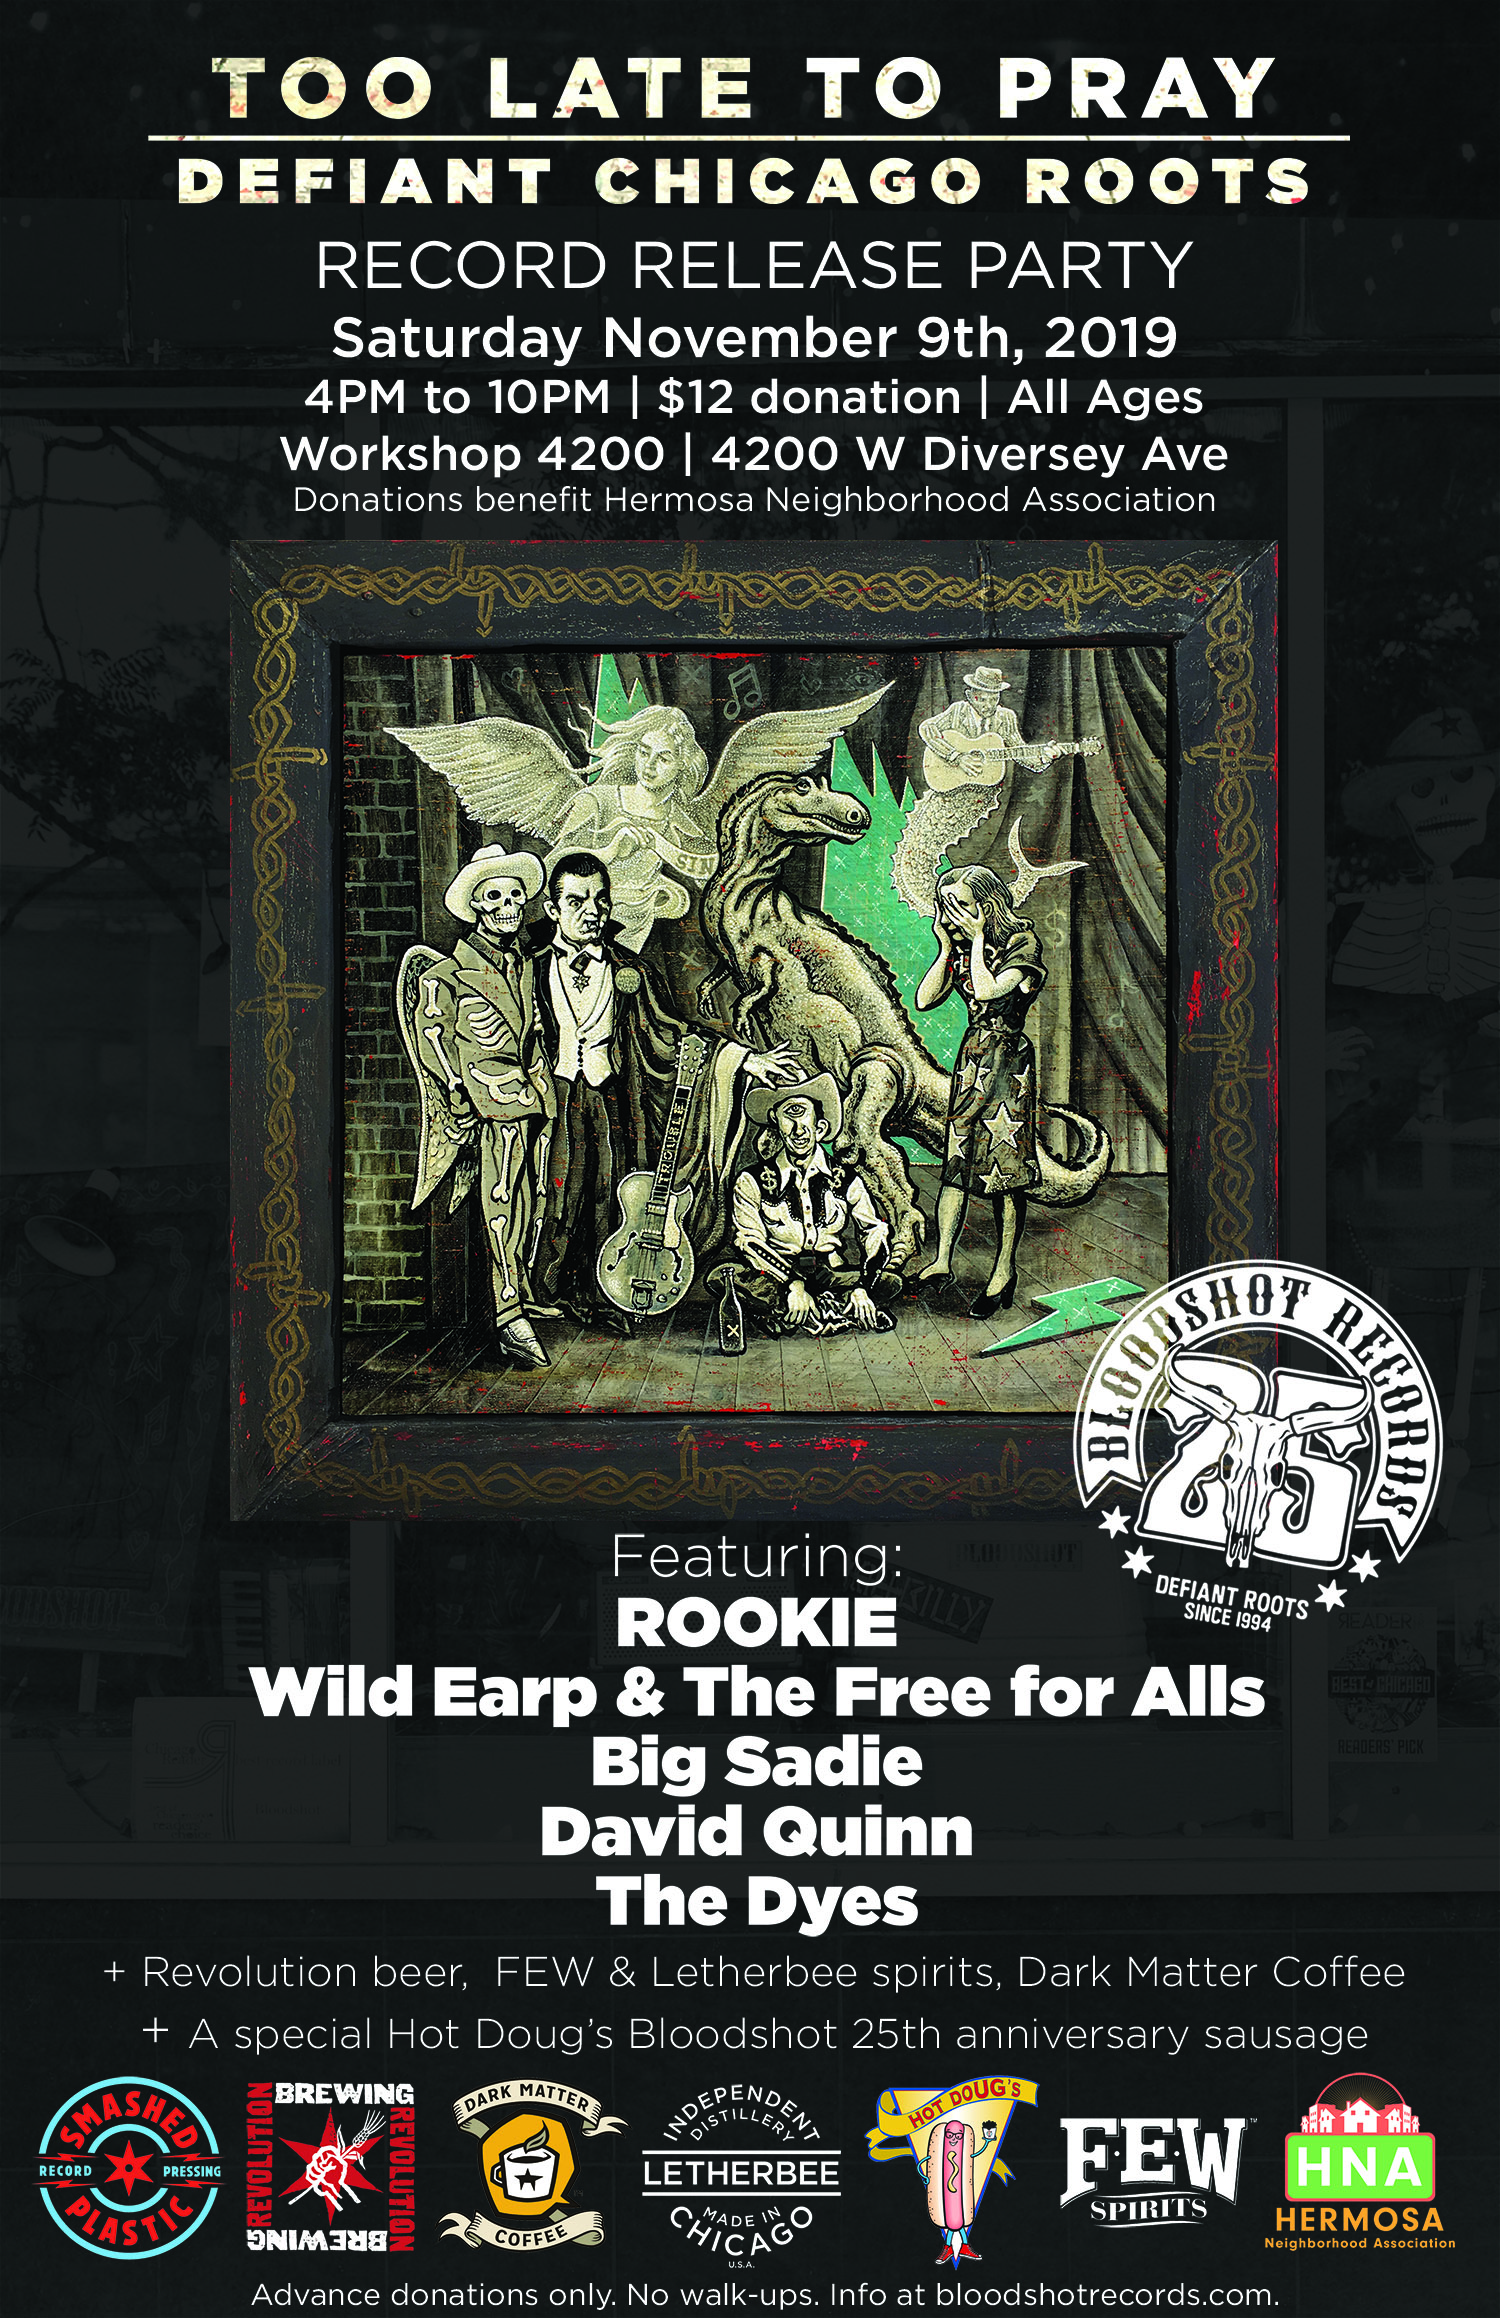 Too Late to Pray Defiant Chicago Roots Release Party Poster 2